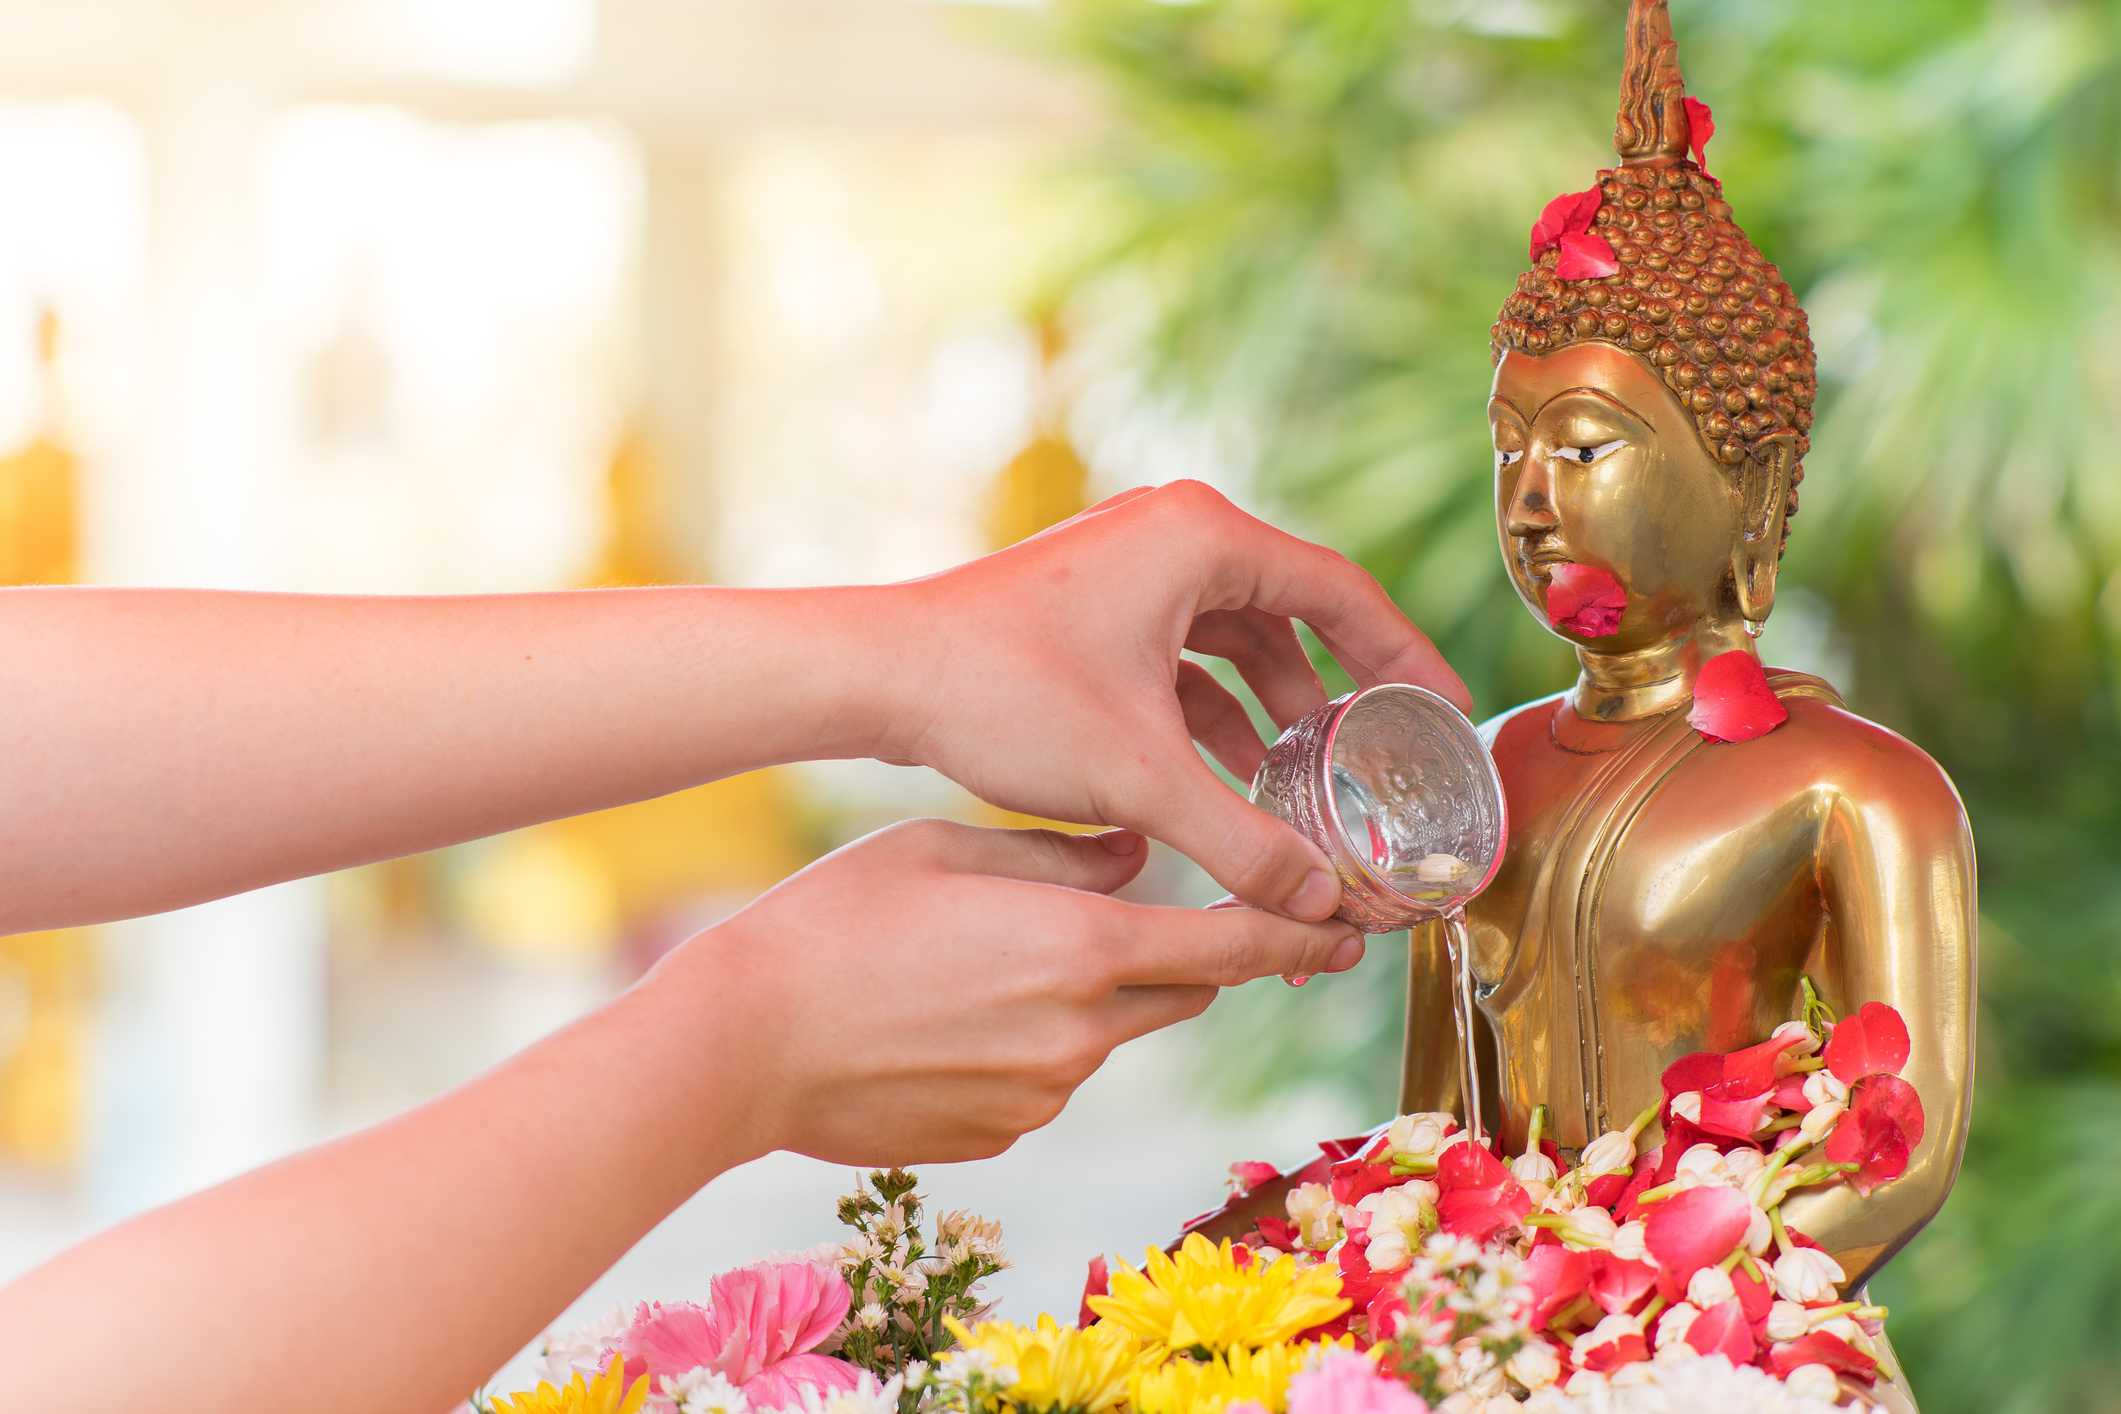 Devotee pours water on Buddha image for Songkran